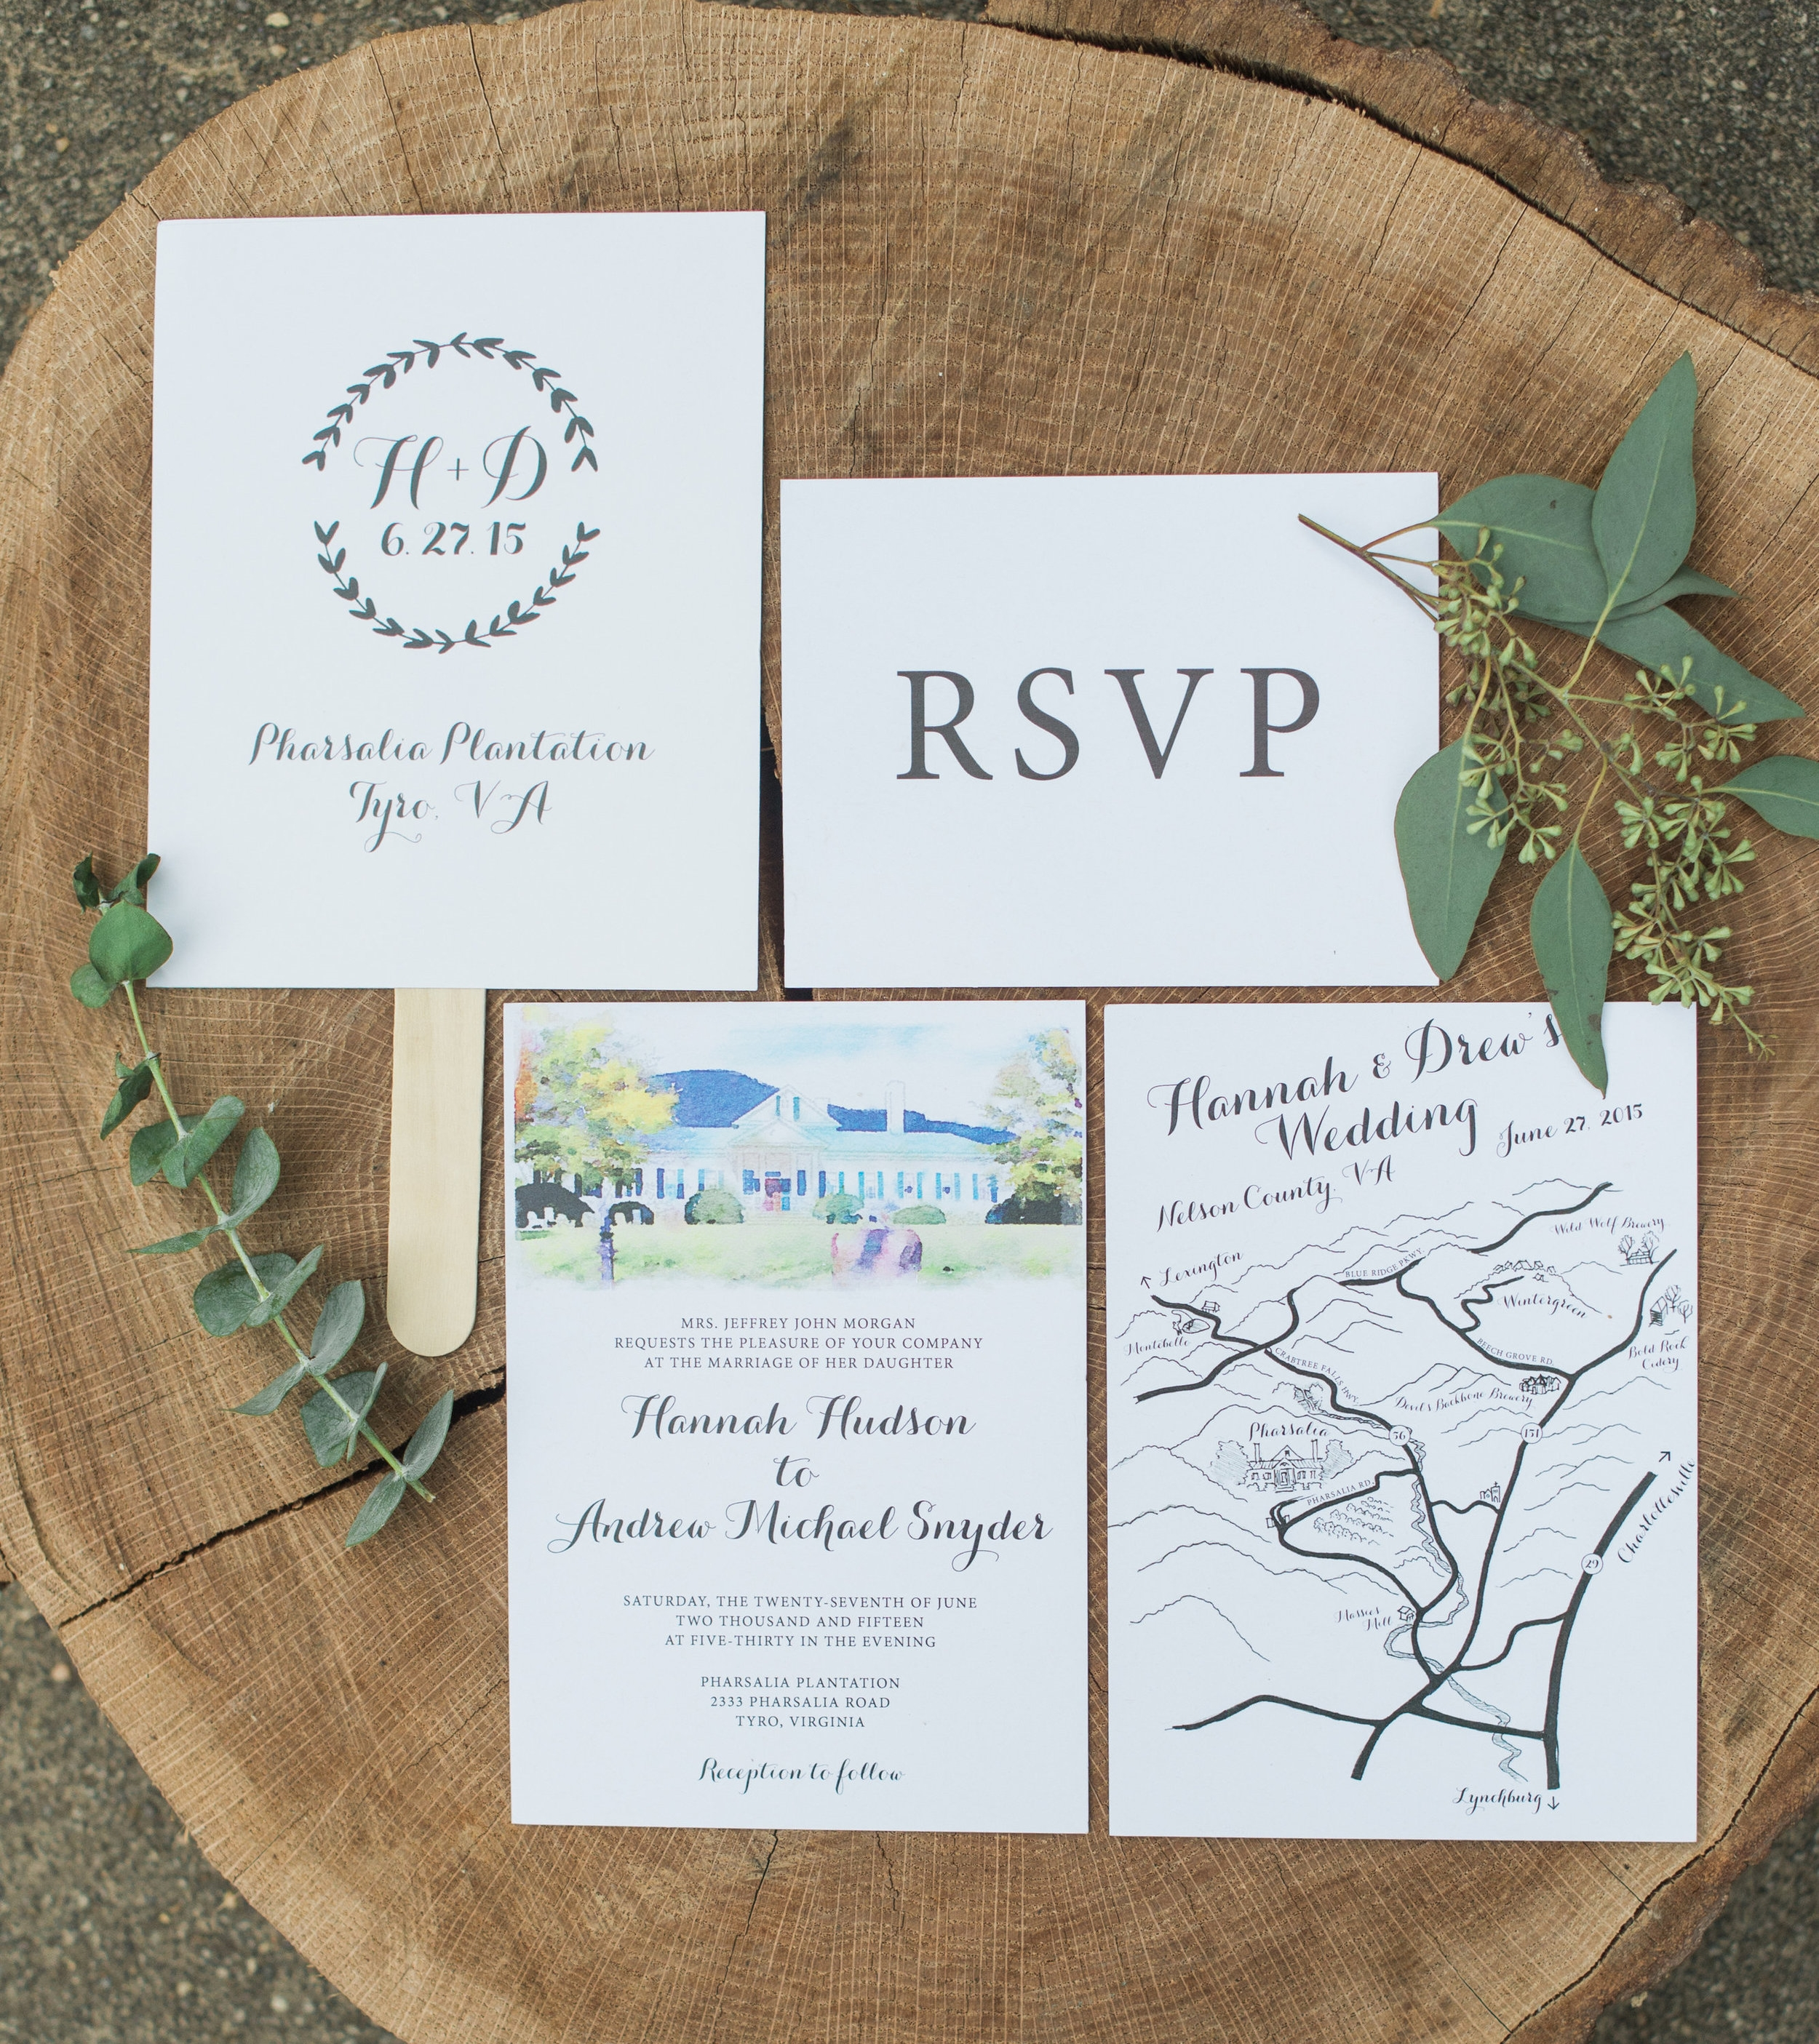 The invitation suite was put together by Hannah's talented brother and sister